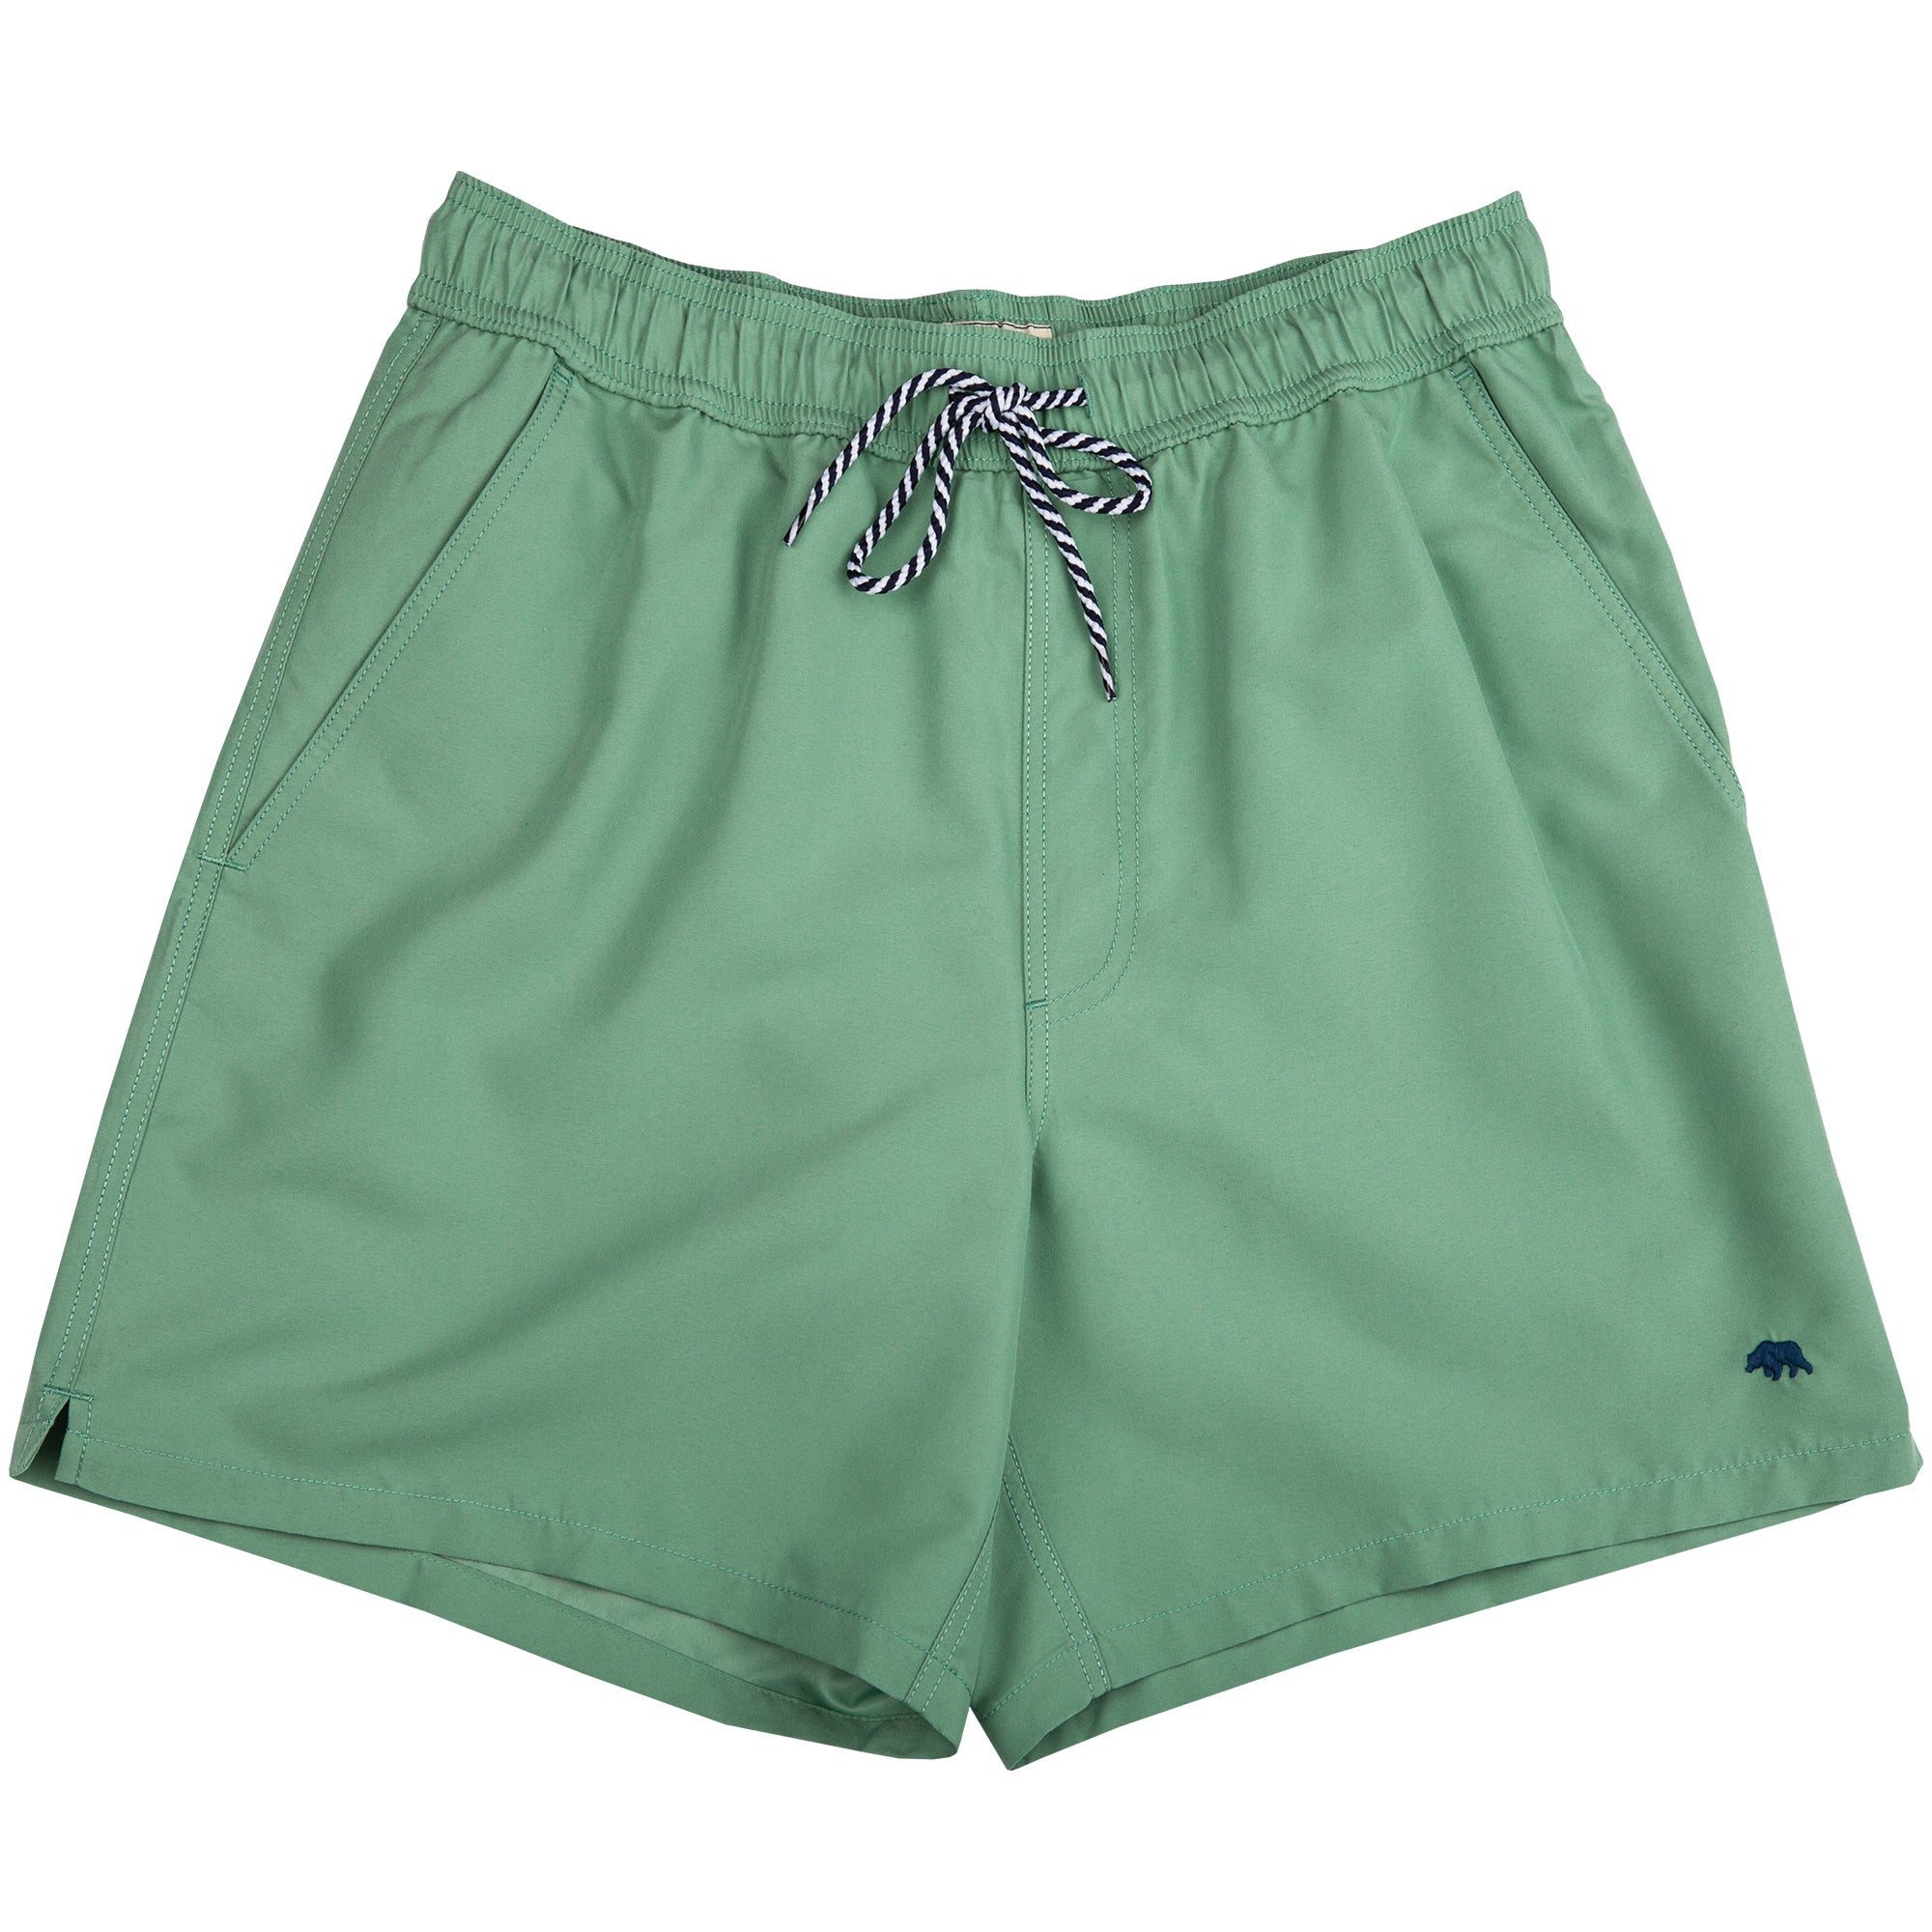 Atlantic Swimwear Solid - OnwardReserve